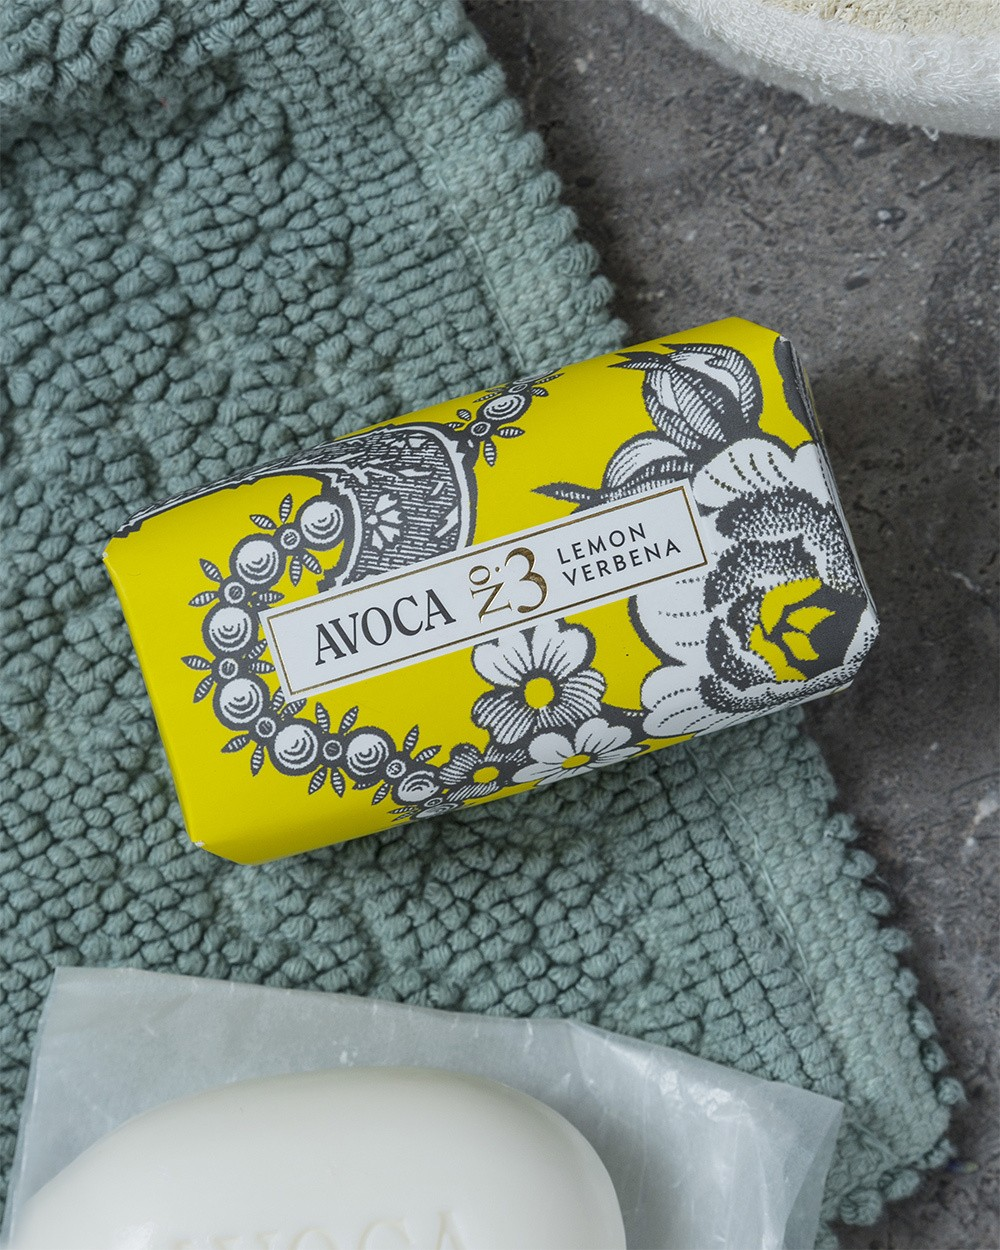 Avoca No 3 Soap - Lemon Verbena